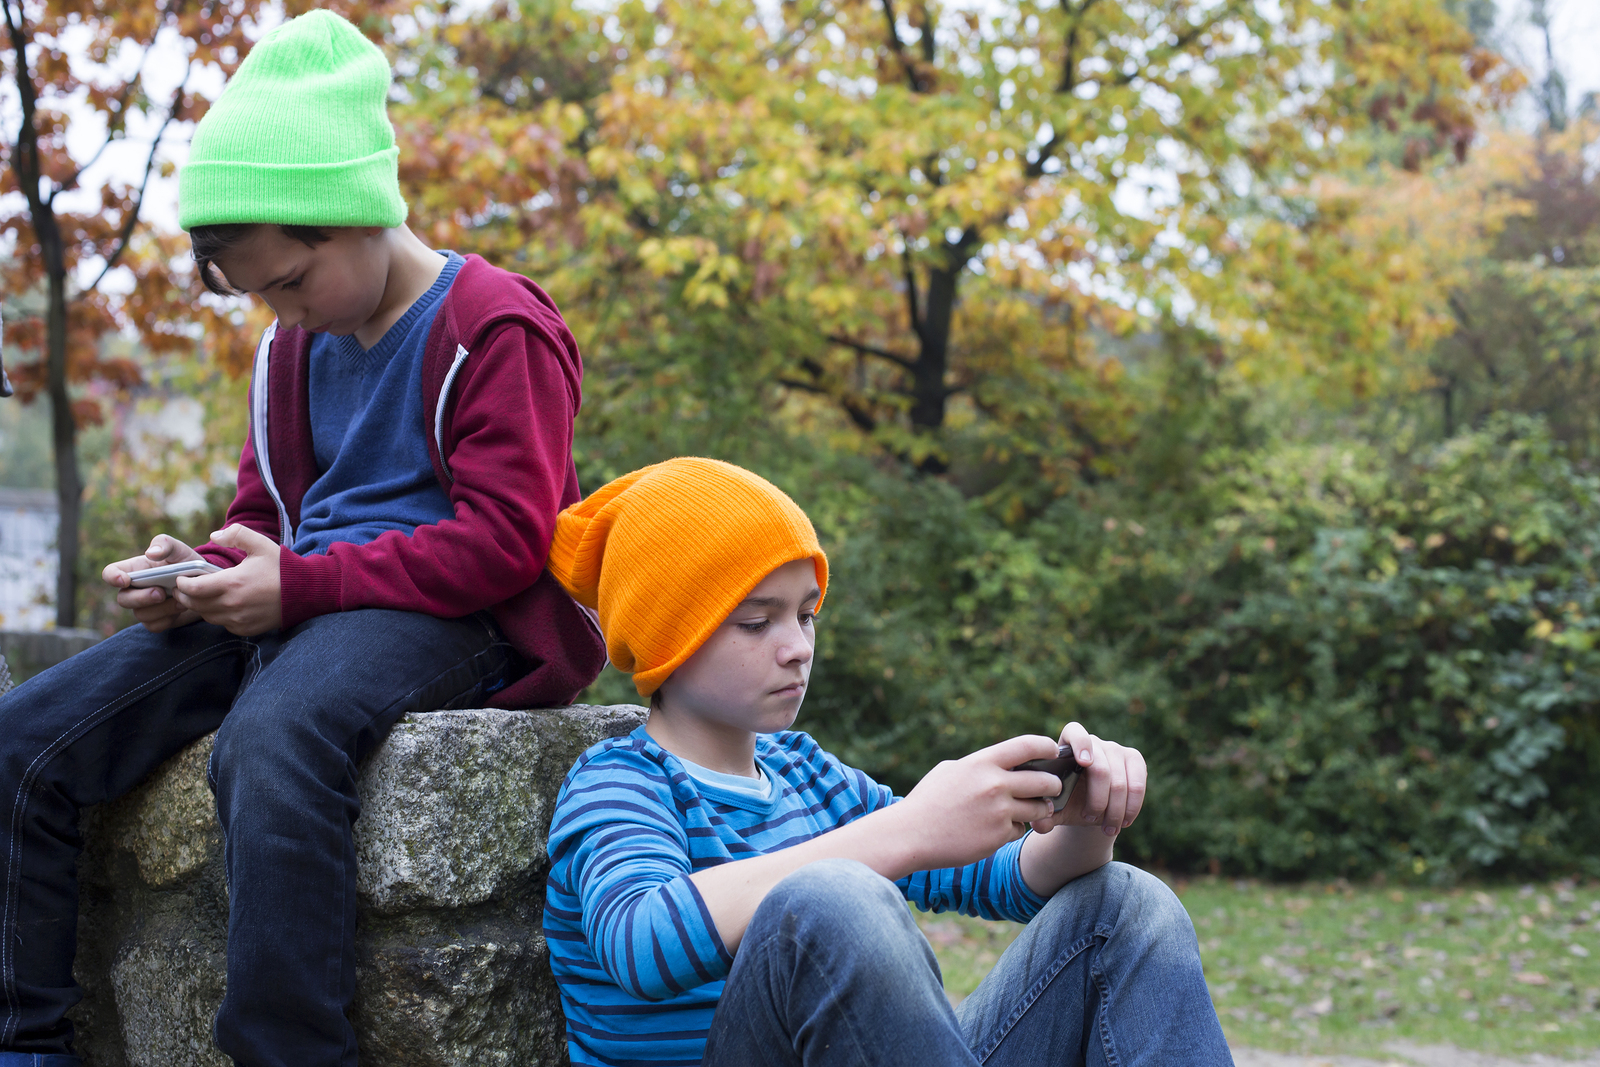 Excessive amount of time children spend in front of a screen puts their health at risk.